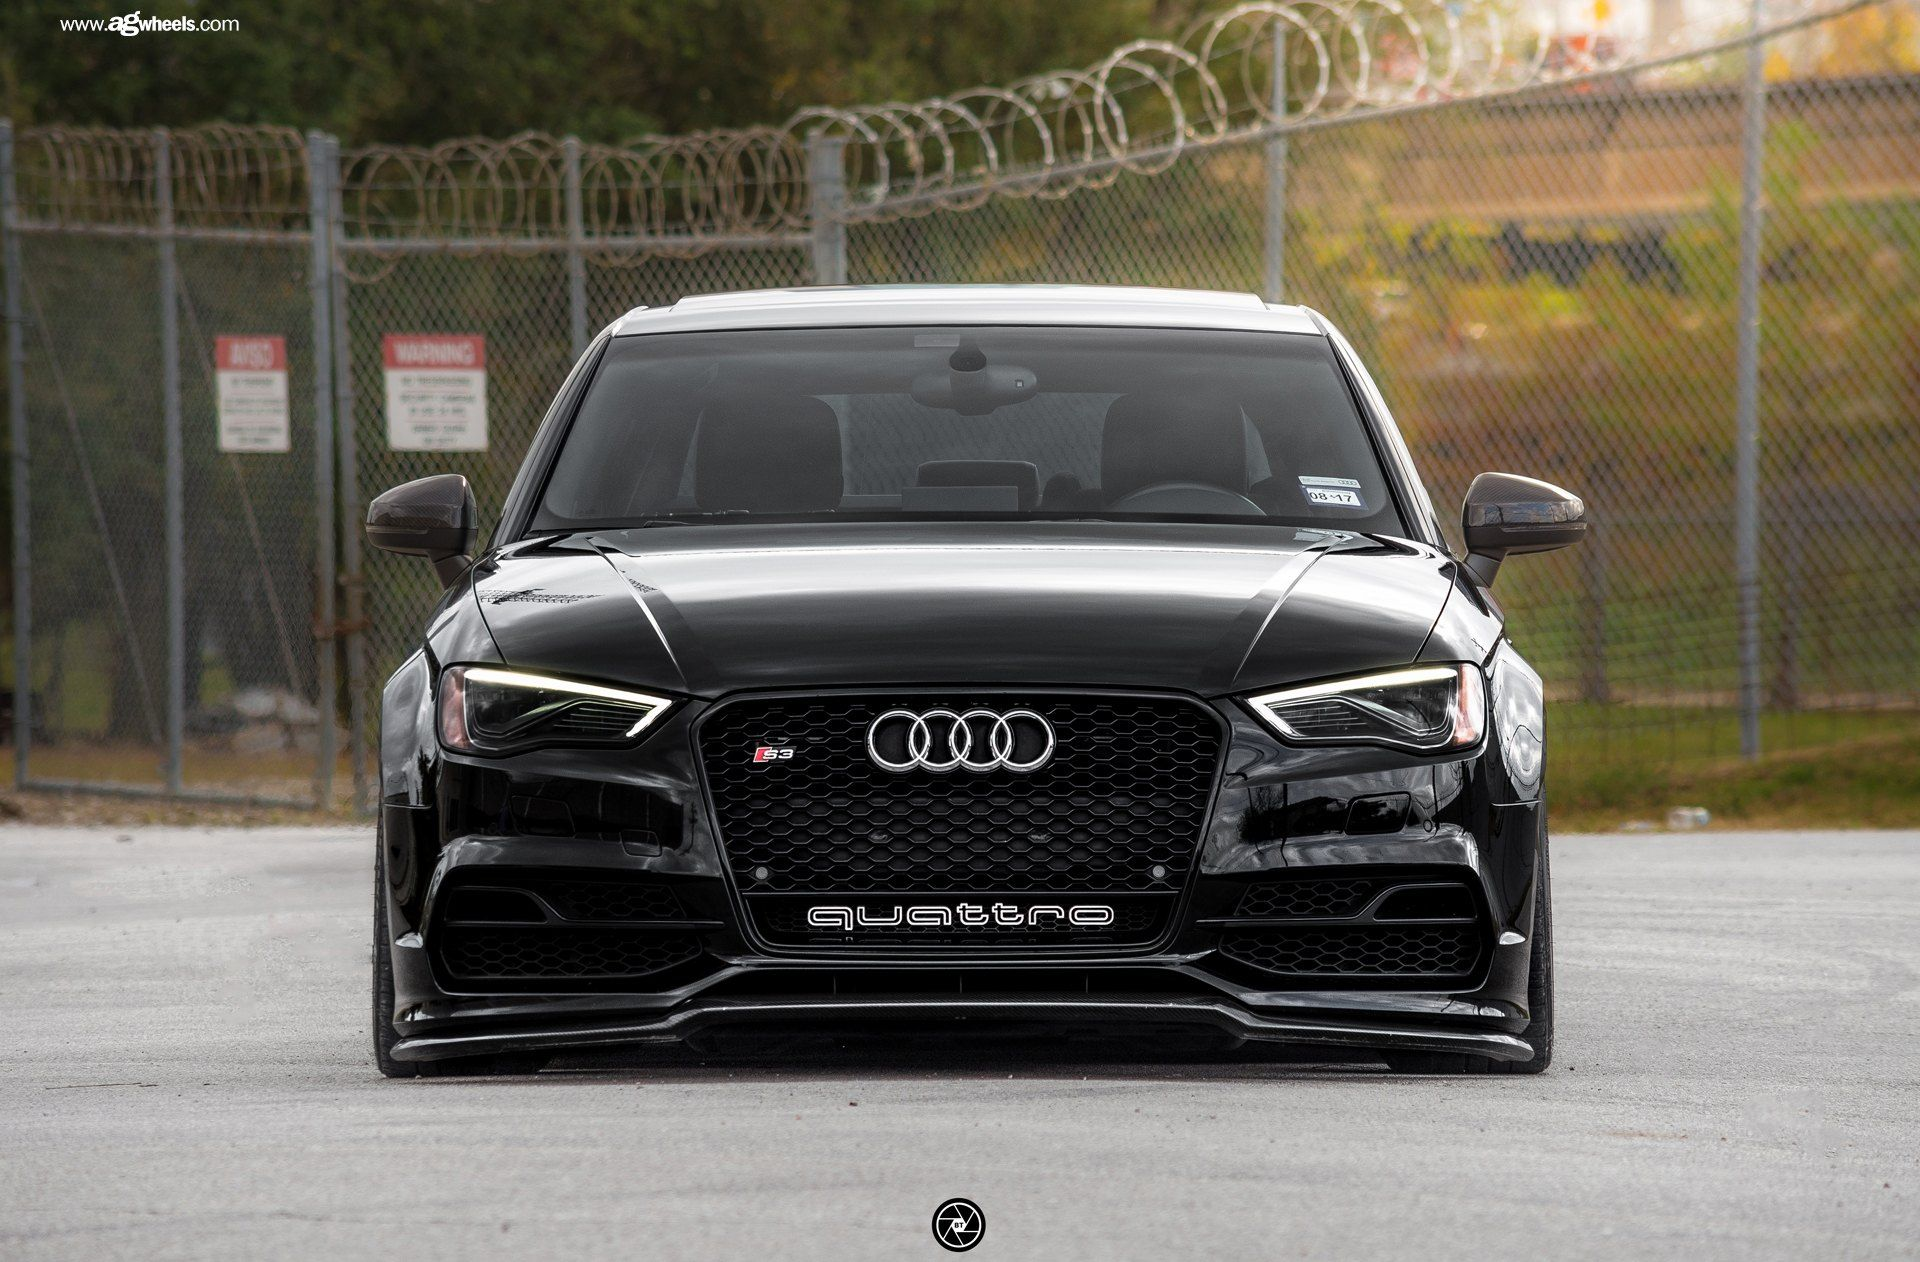 Stylish Thing Black Audi S3 On Gold Avant Garde Rims Black Audi